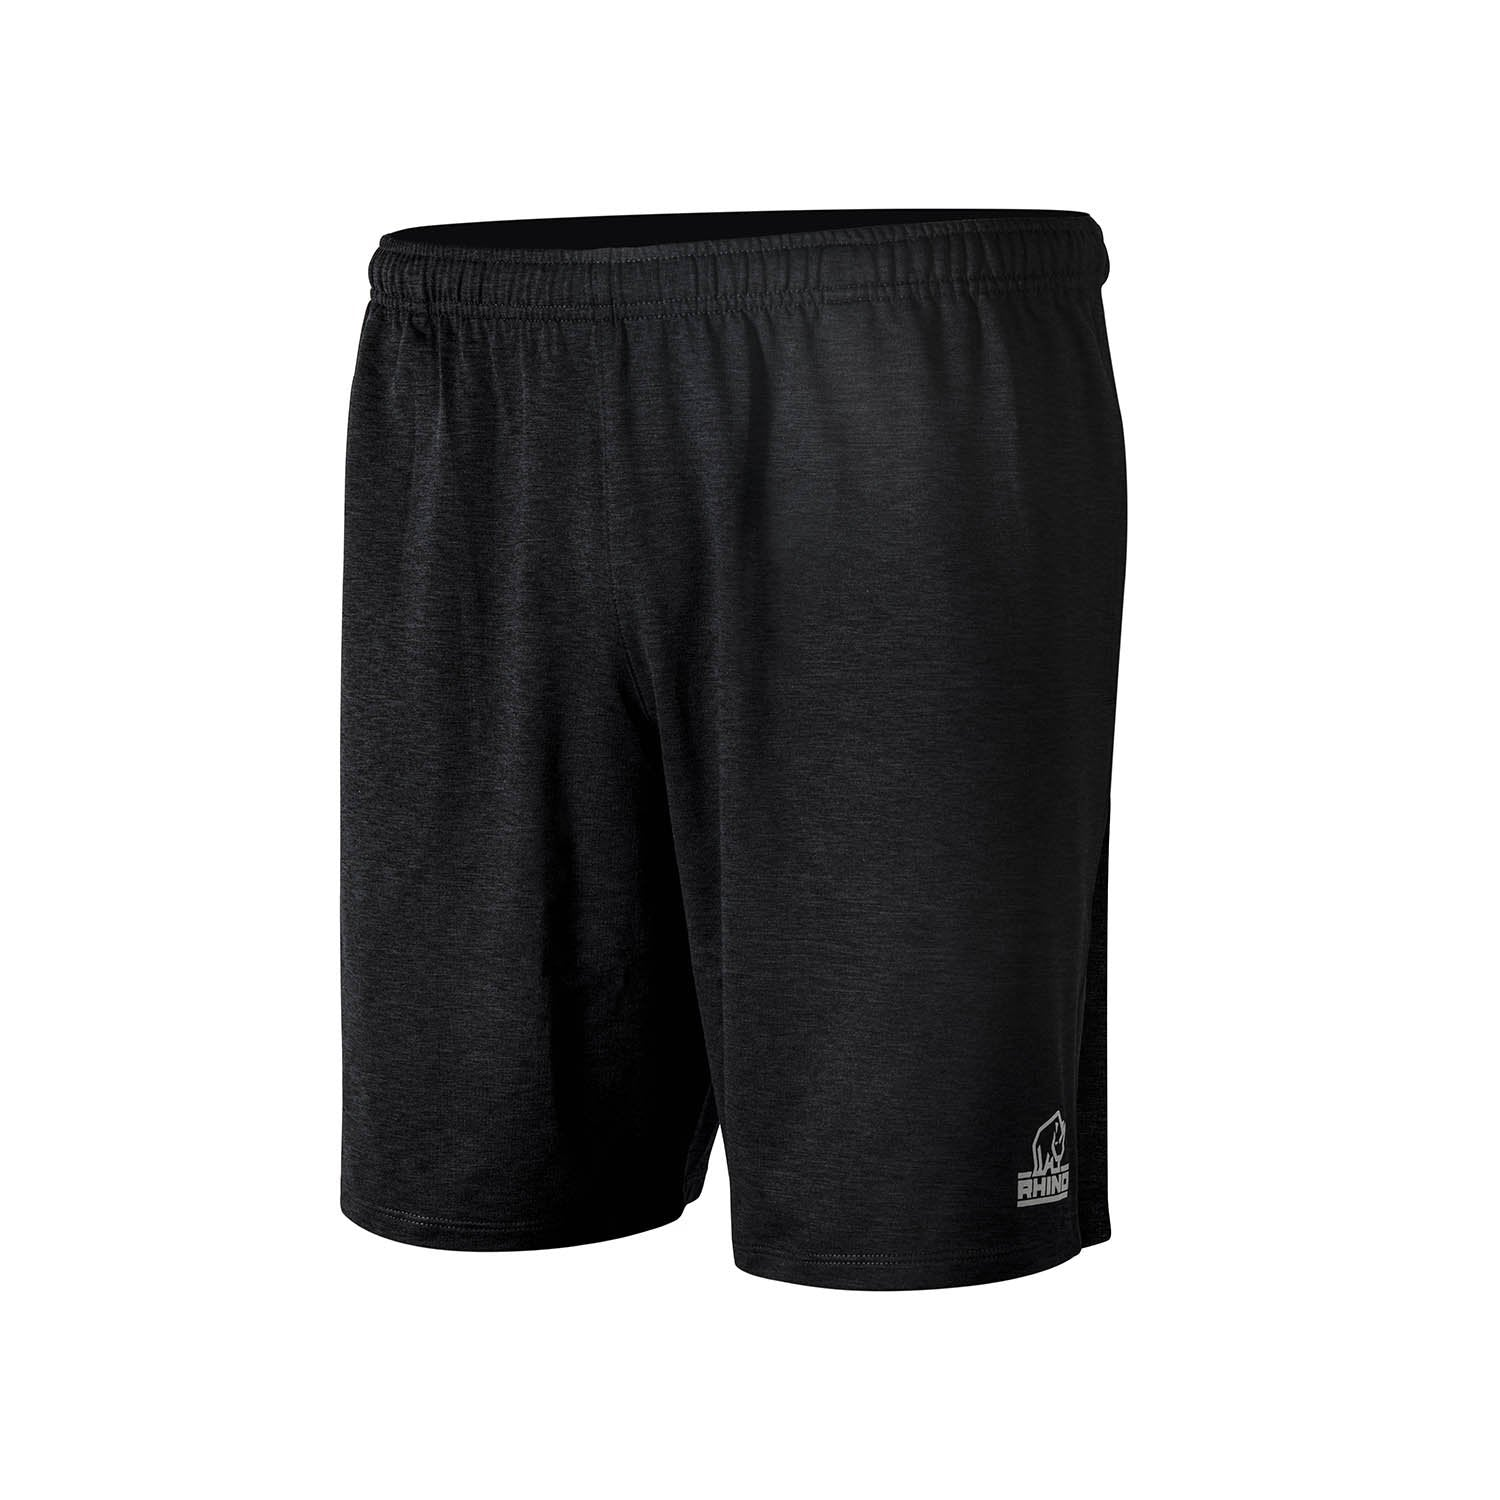 Real Madrid Fleece Shorts Pants Bottoms Trousers Football Grey Marl Mens